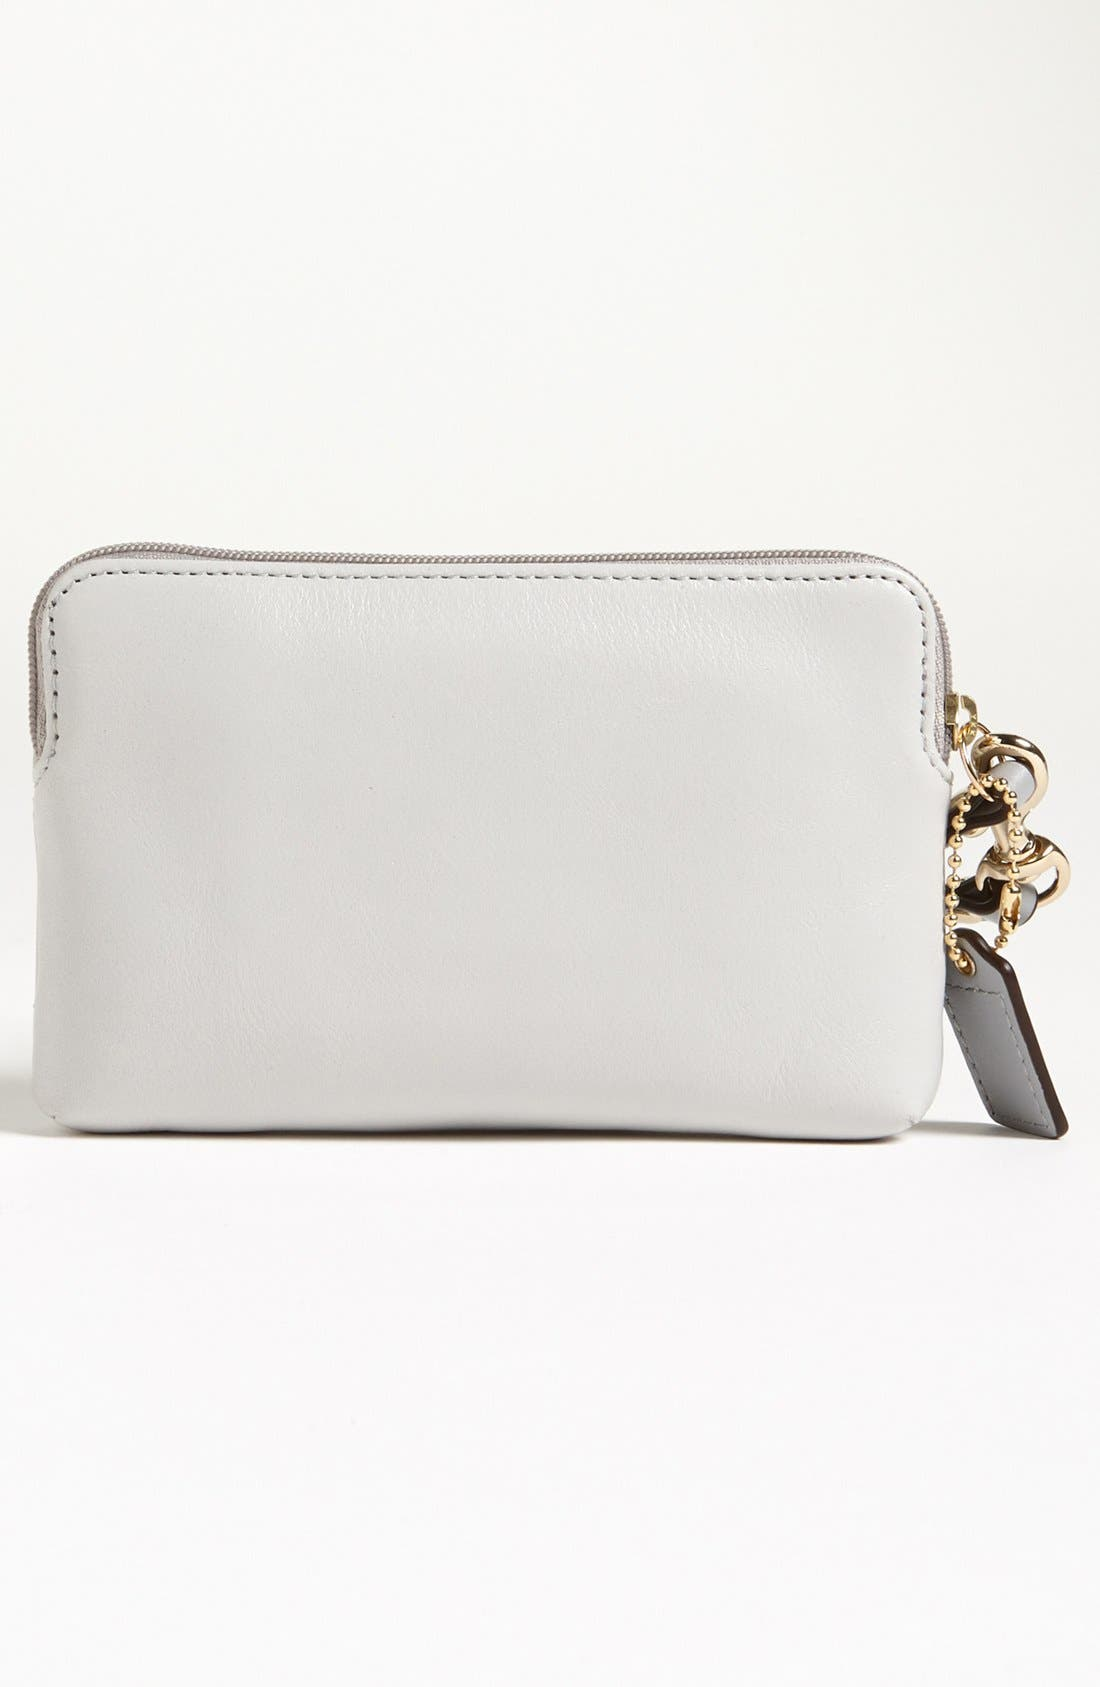 Alternate Image 3  - COACH 'Poppy' Phone Wristlet